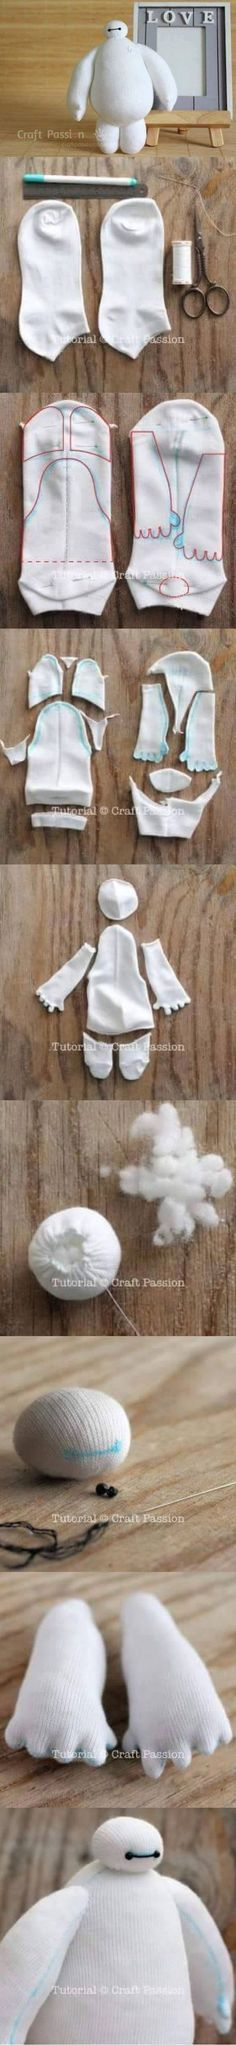 For those who are fans of Baymax and want to make them. Here, DIY Baymax from socks Sock Crafts, Cute Crafts, Crafts To Do, Sewing Crafts, Sewing Projects, Craft Projects, Crafts For Kids, Arts And Crafts, Craft Kids